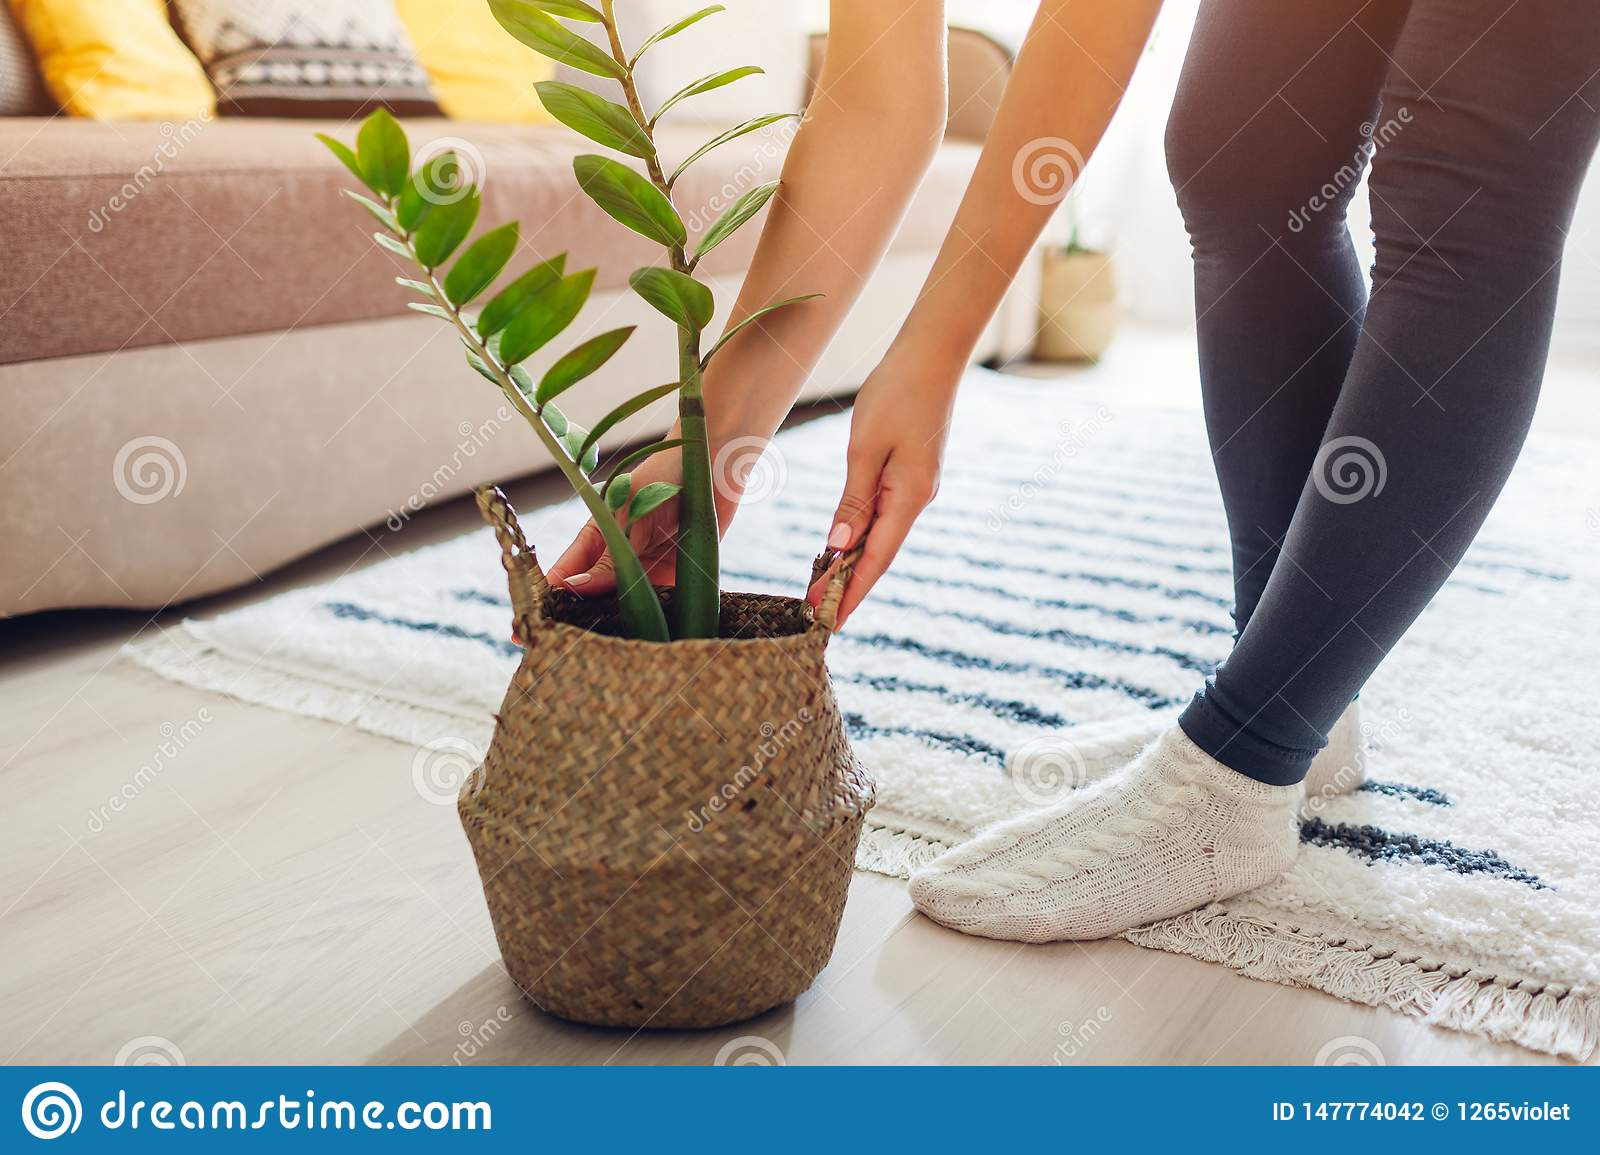 Young Woman Puts Zz Plant In Straw Basket Interior Decor Of Living Room Stock Photo Image Of Pillows Relax 147774042